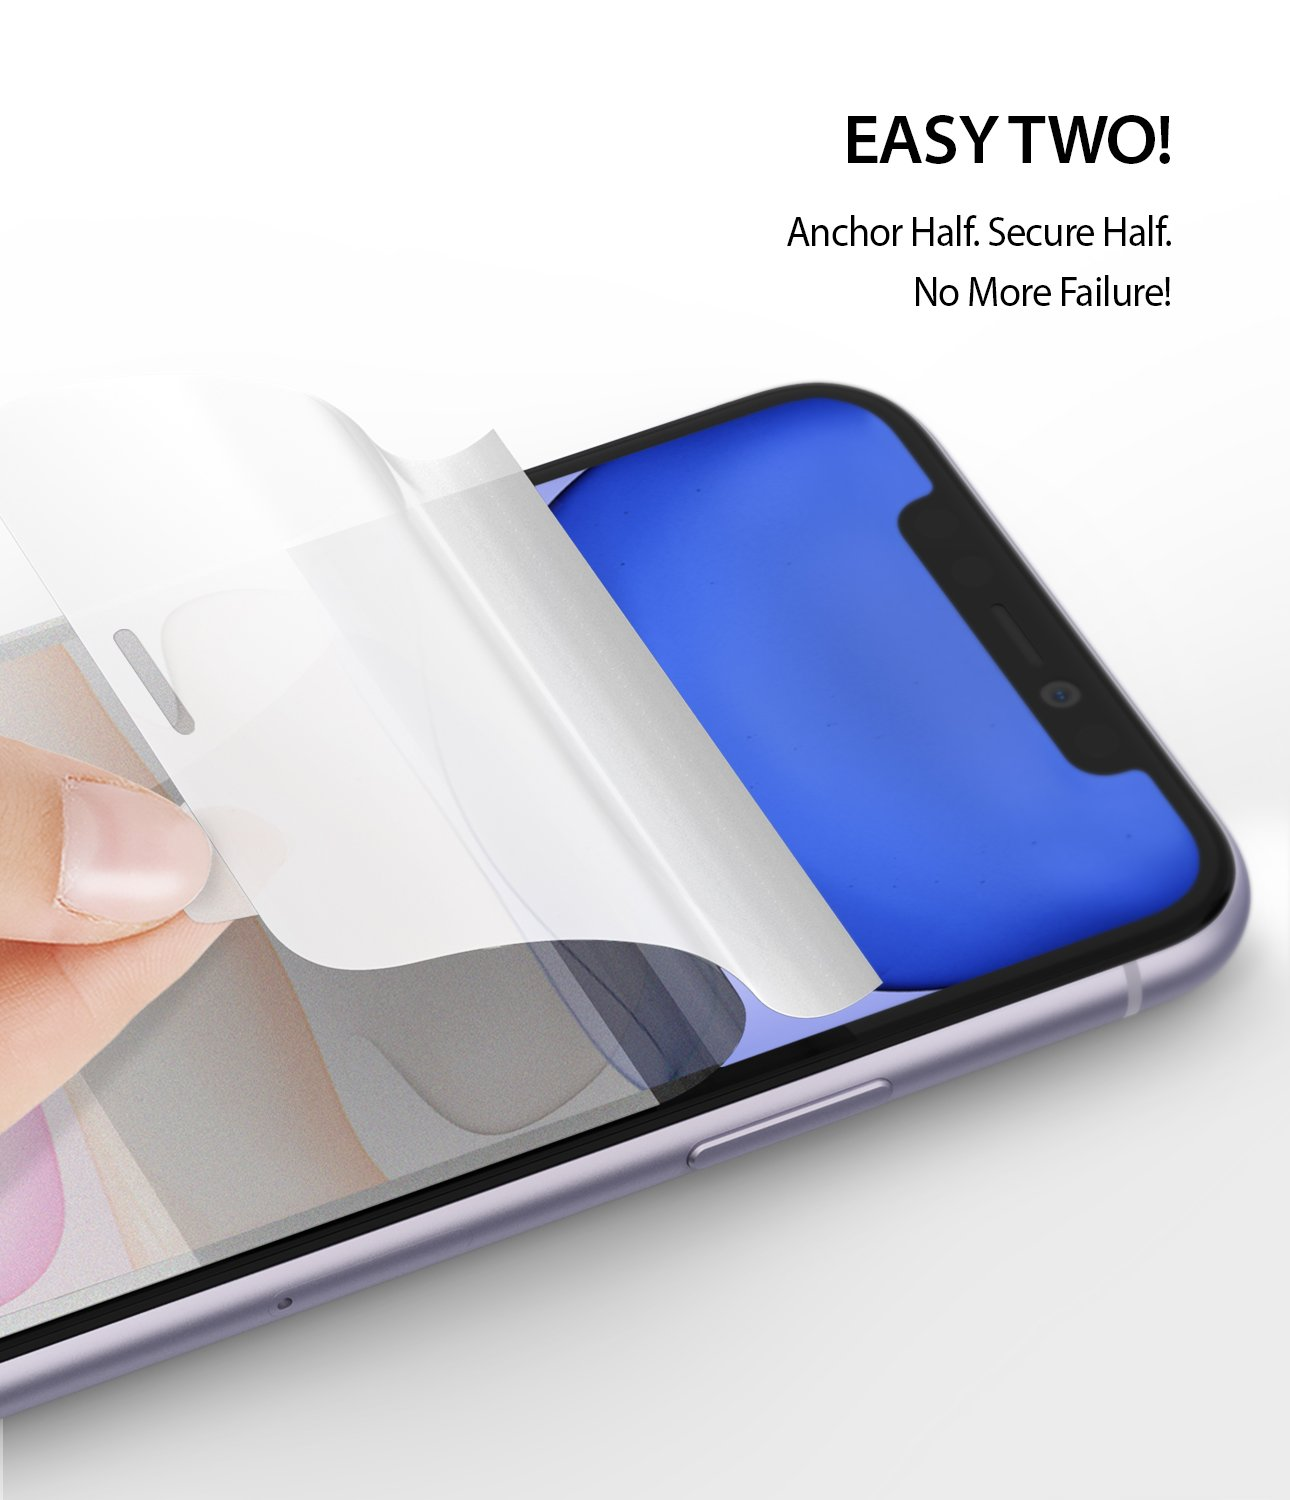 Ringke Dual Easy Film Screen Protector for iPhone 11 Easy Installation Easy Two